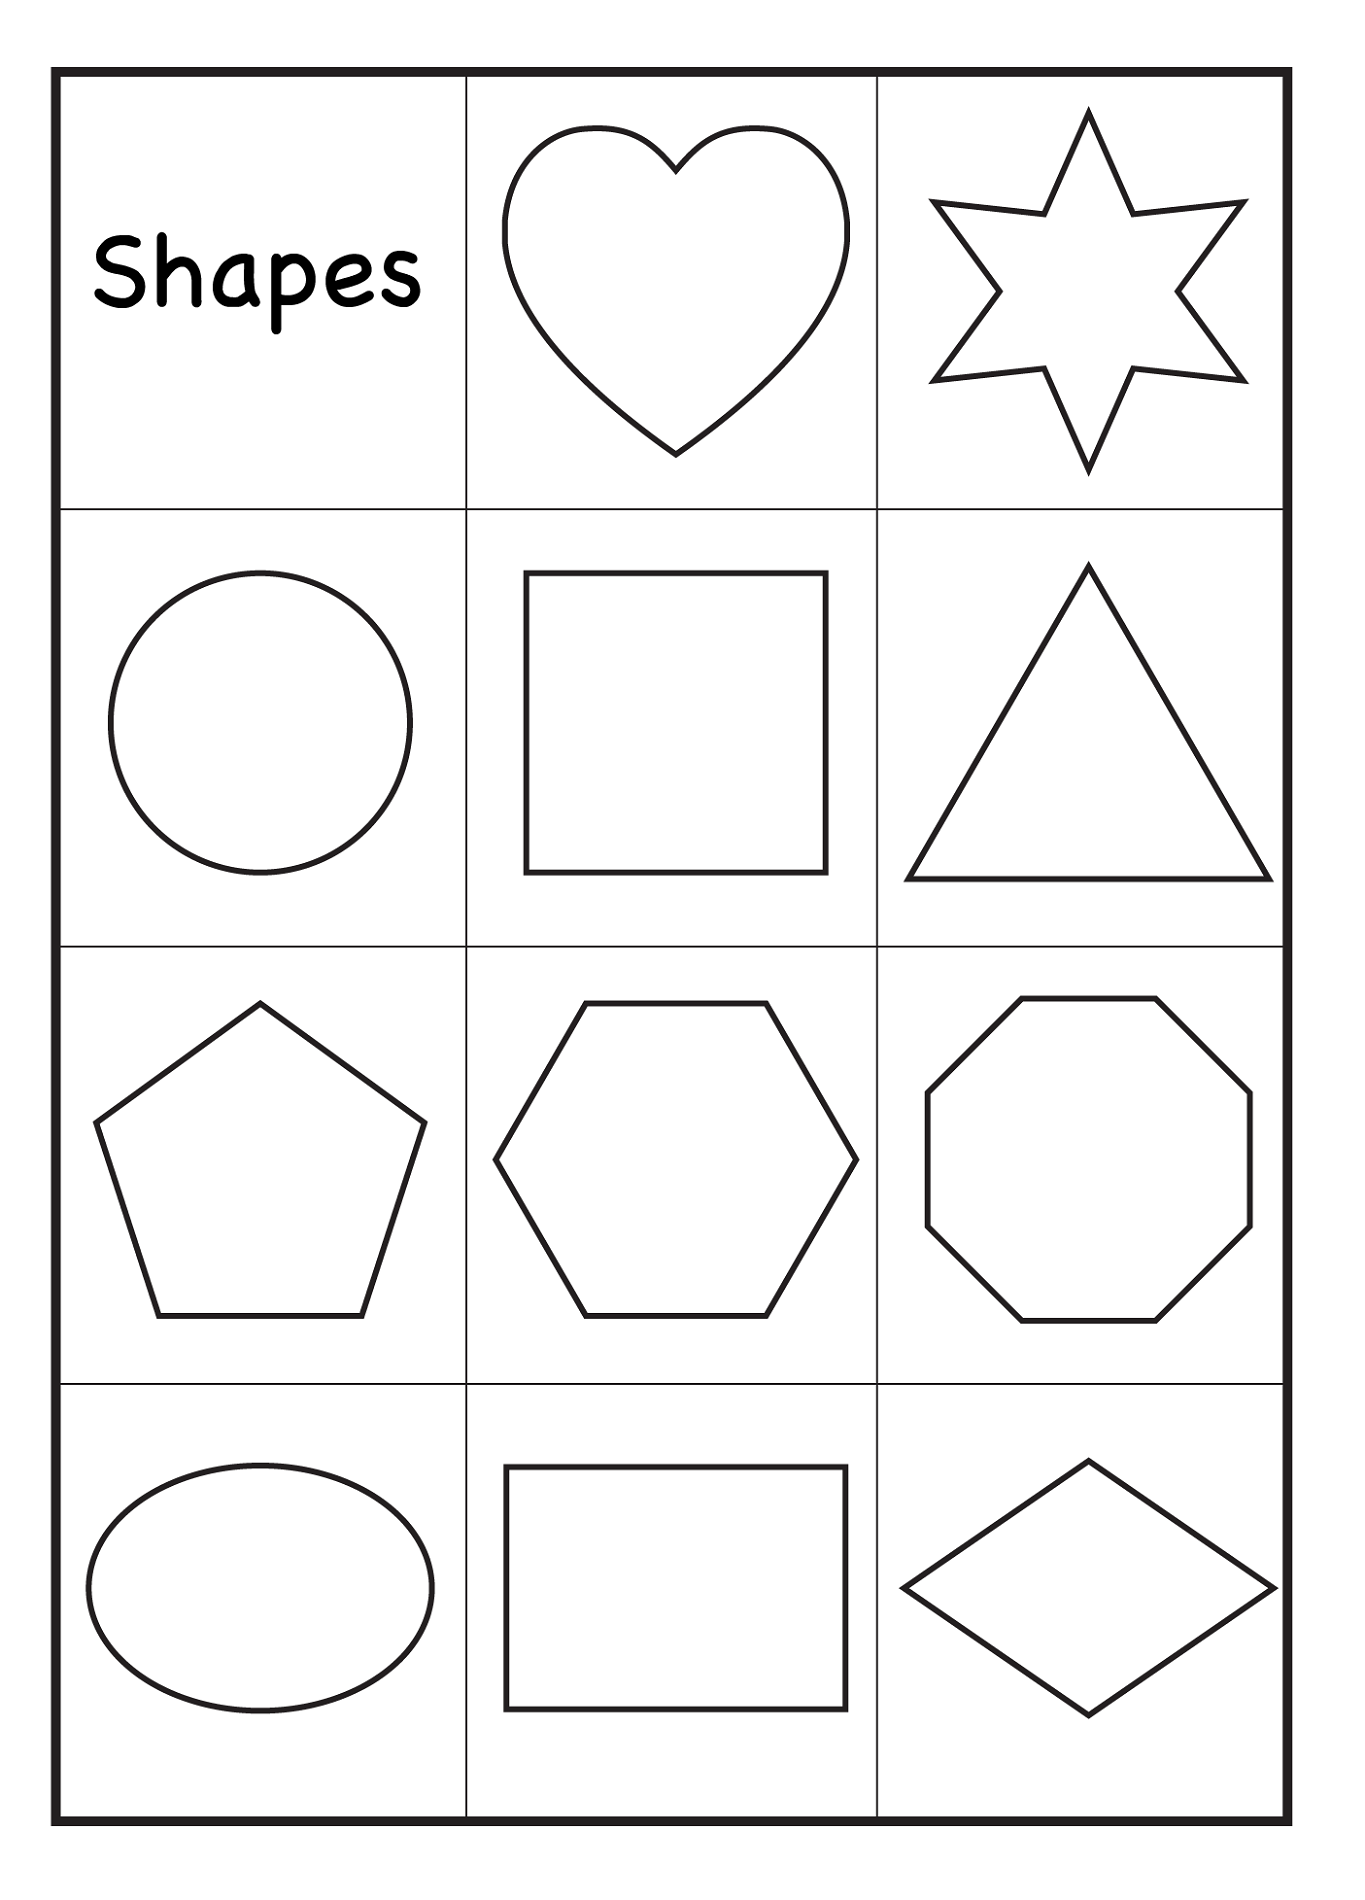 Color by shape worksheet free worksheets library for Color by shape coloring pages